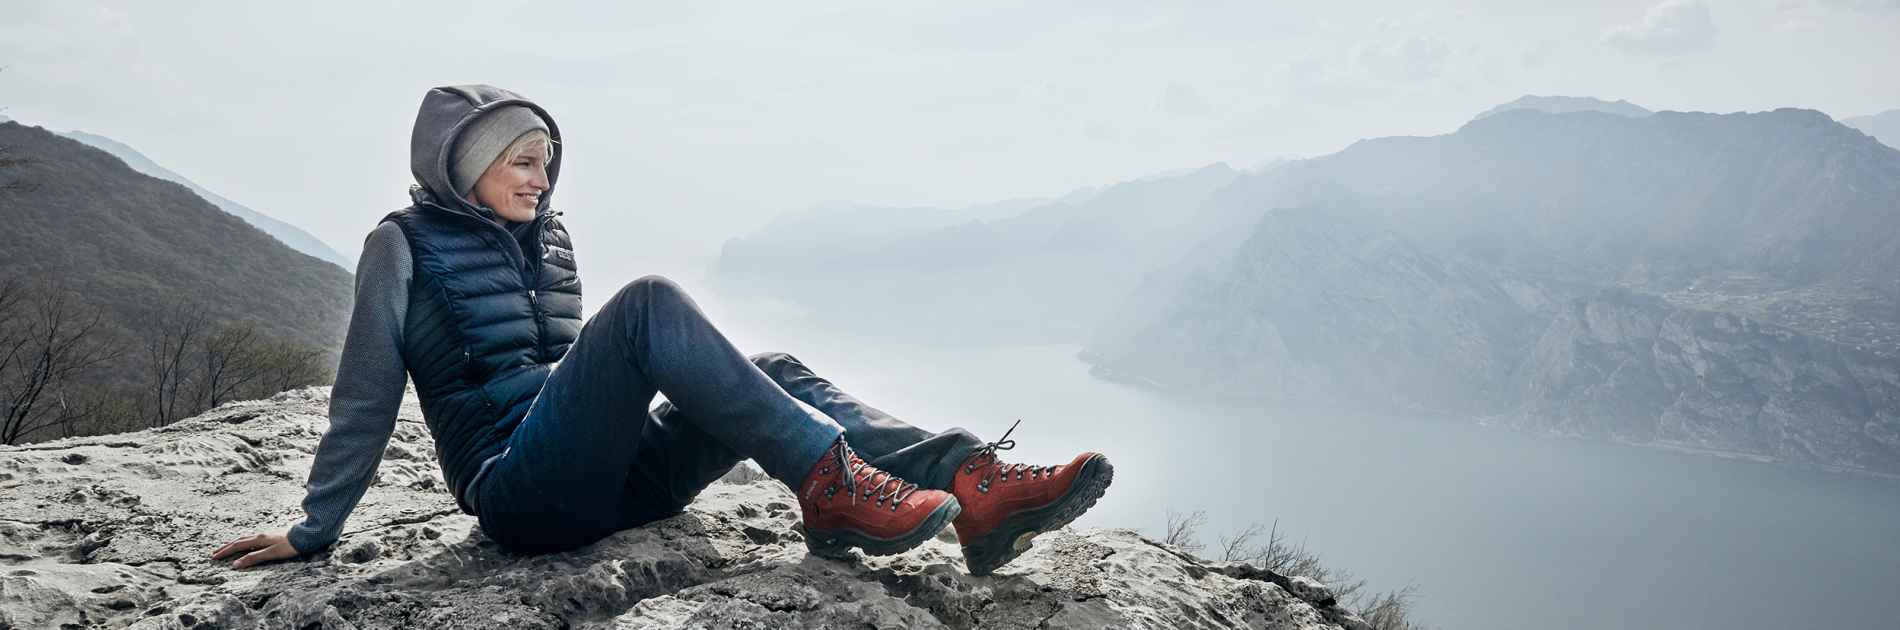 Photo avec la RENEGADE GTX MID Ws, Image Shooting Gardasee